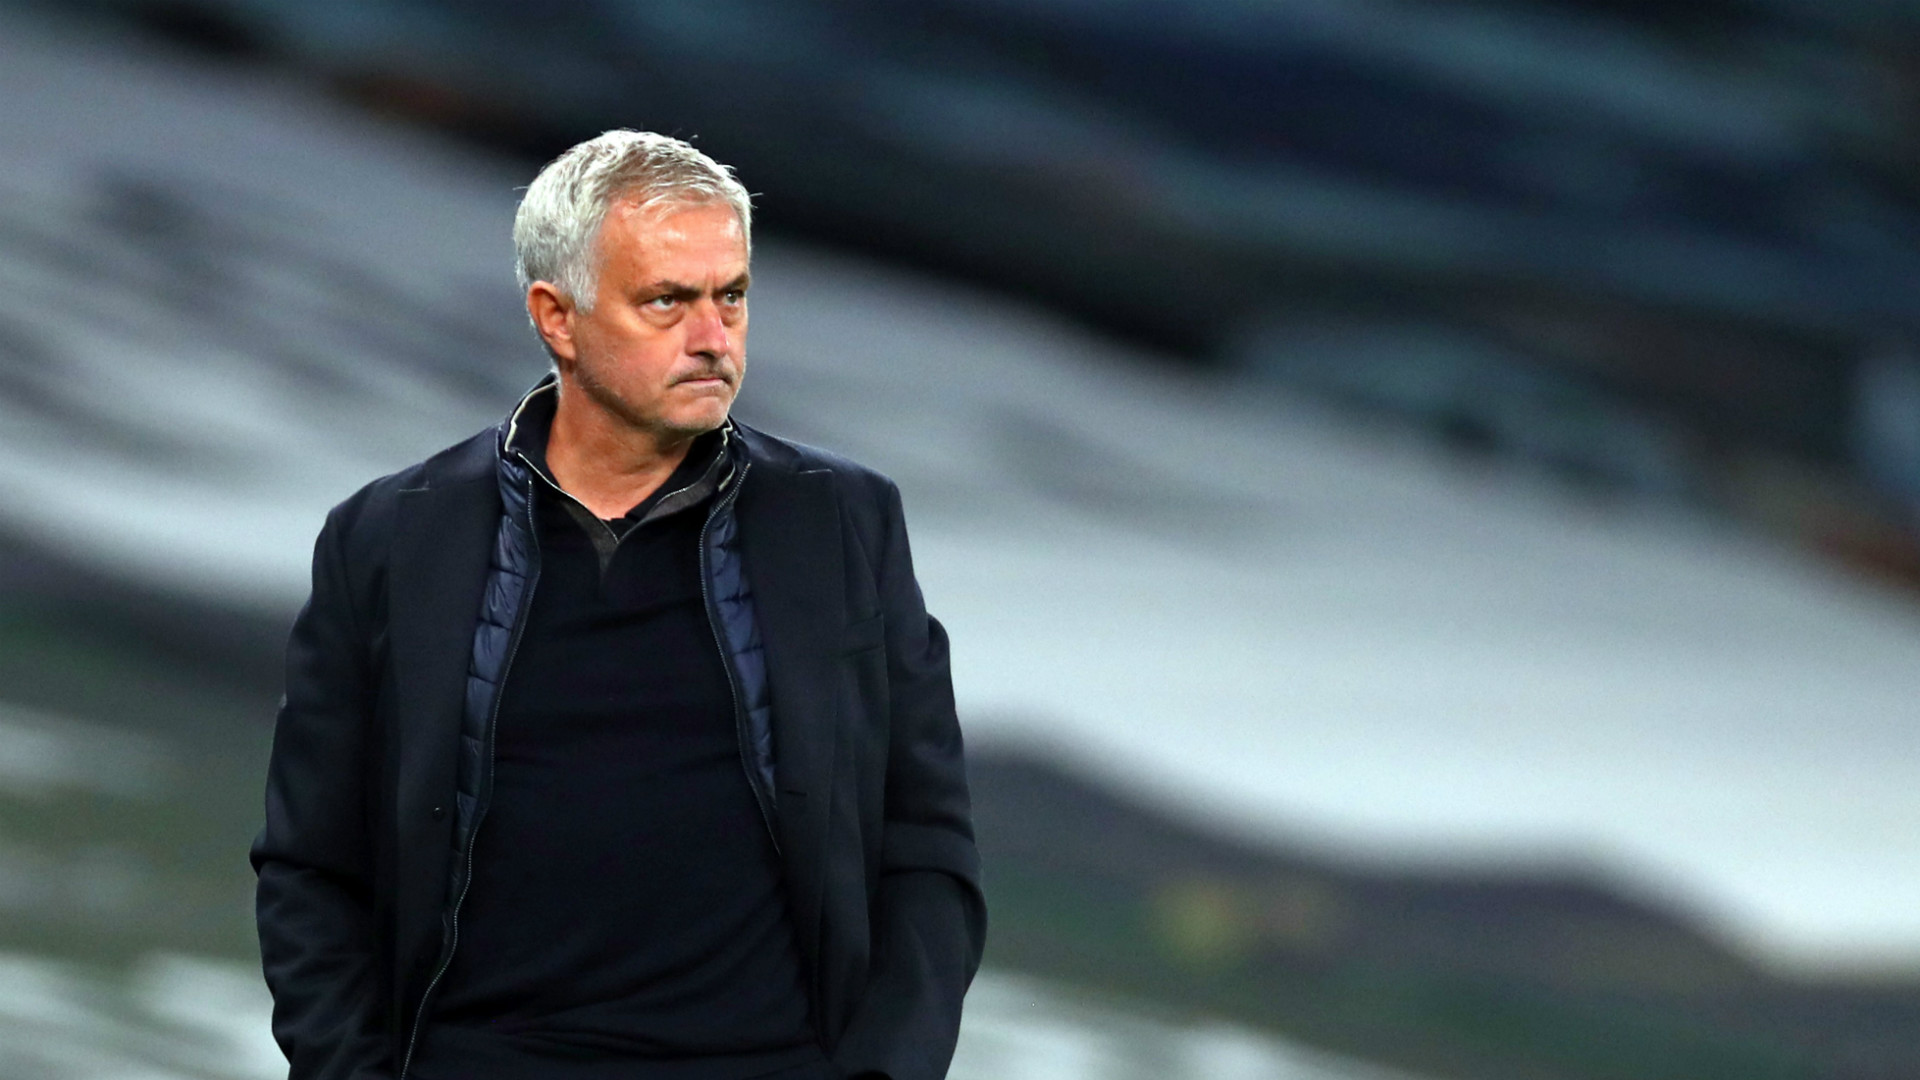 Mourinho attacks Premier League managers for touchline antics and insists he is 'a great example of good behaviour'   Goal.com